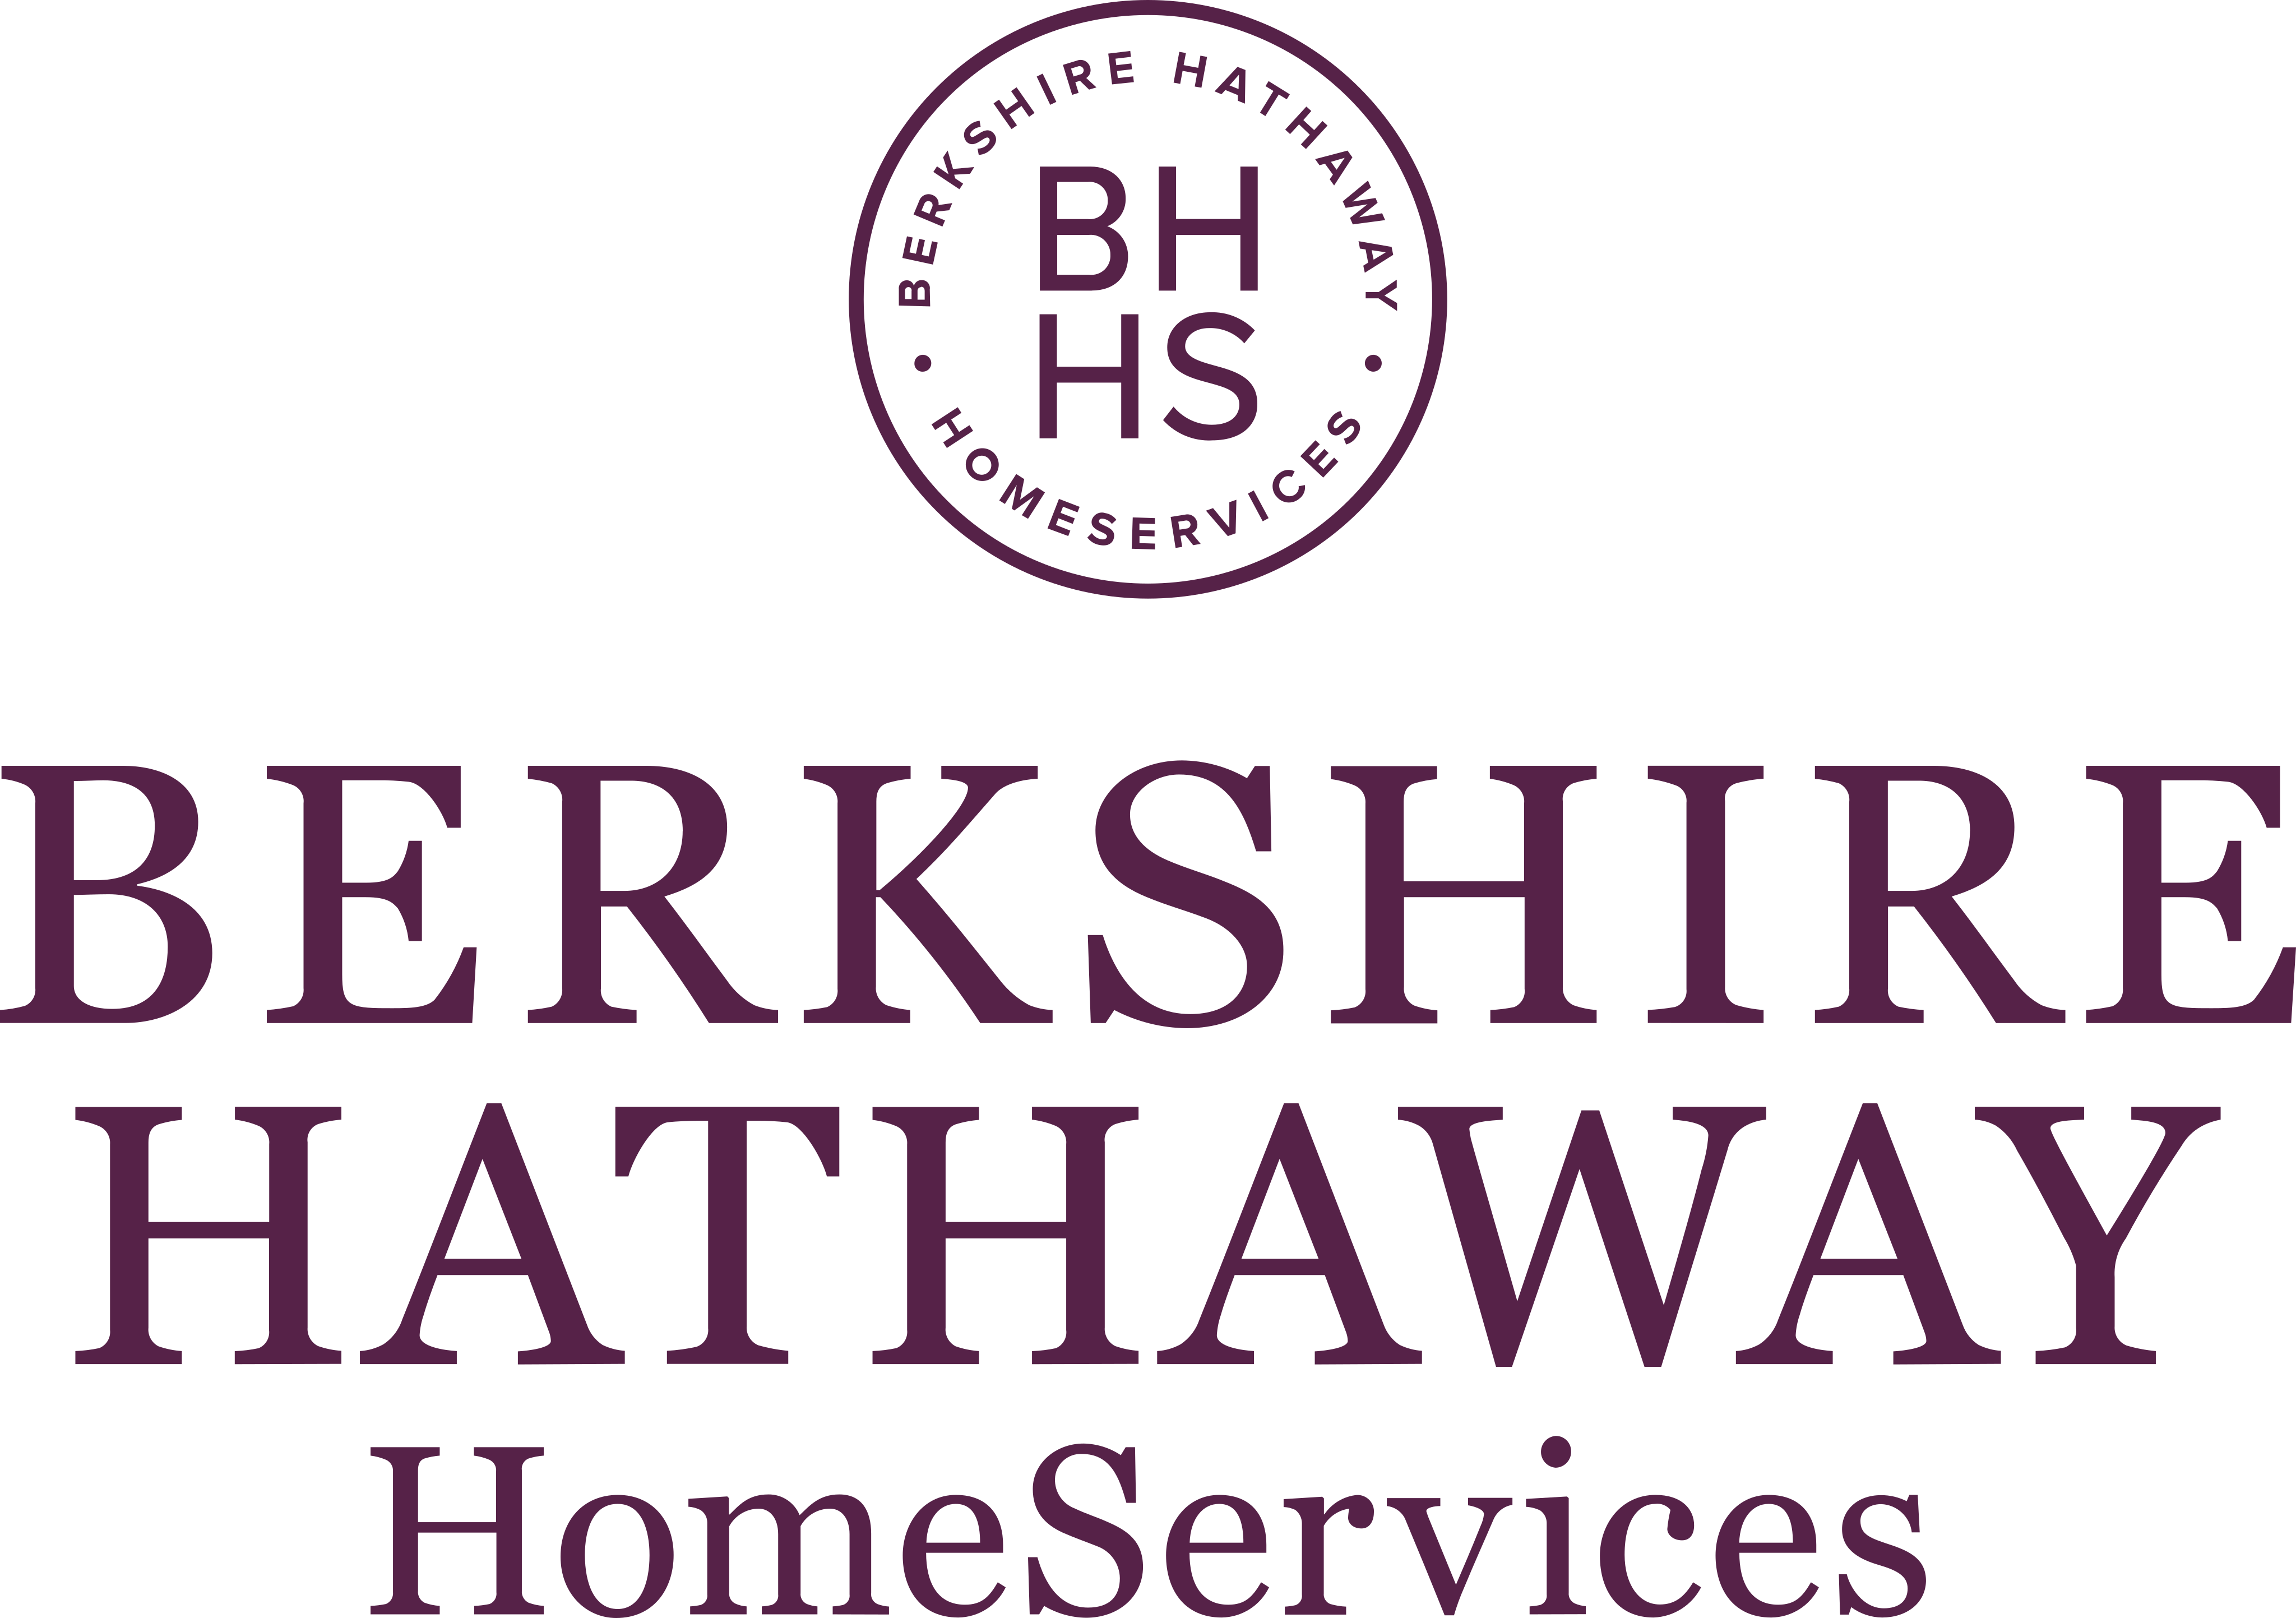 berkshire hathaway home services logo - Berkshire Hathaway HomeServices Logo